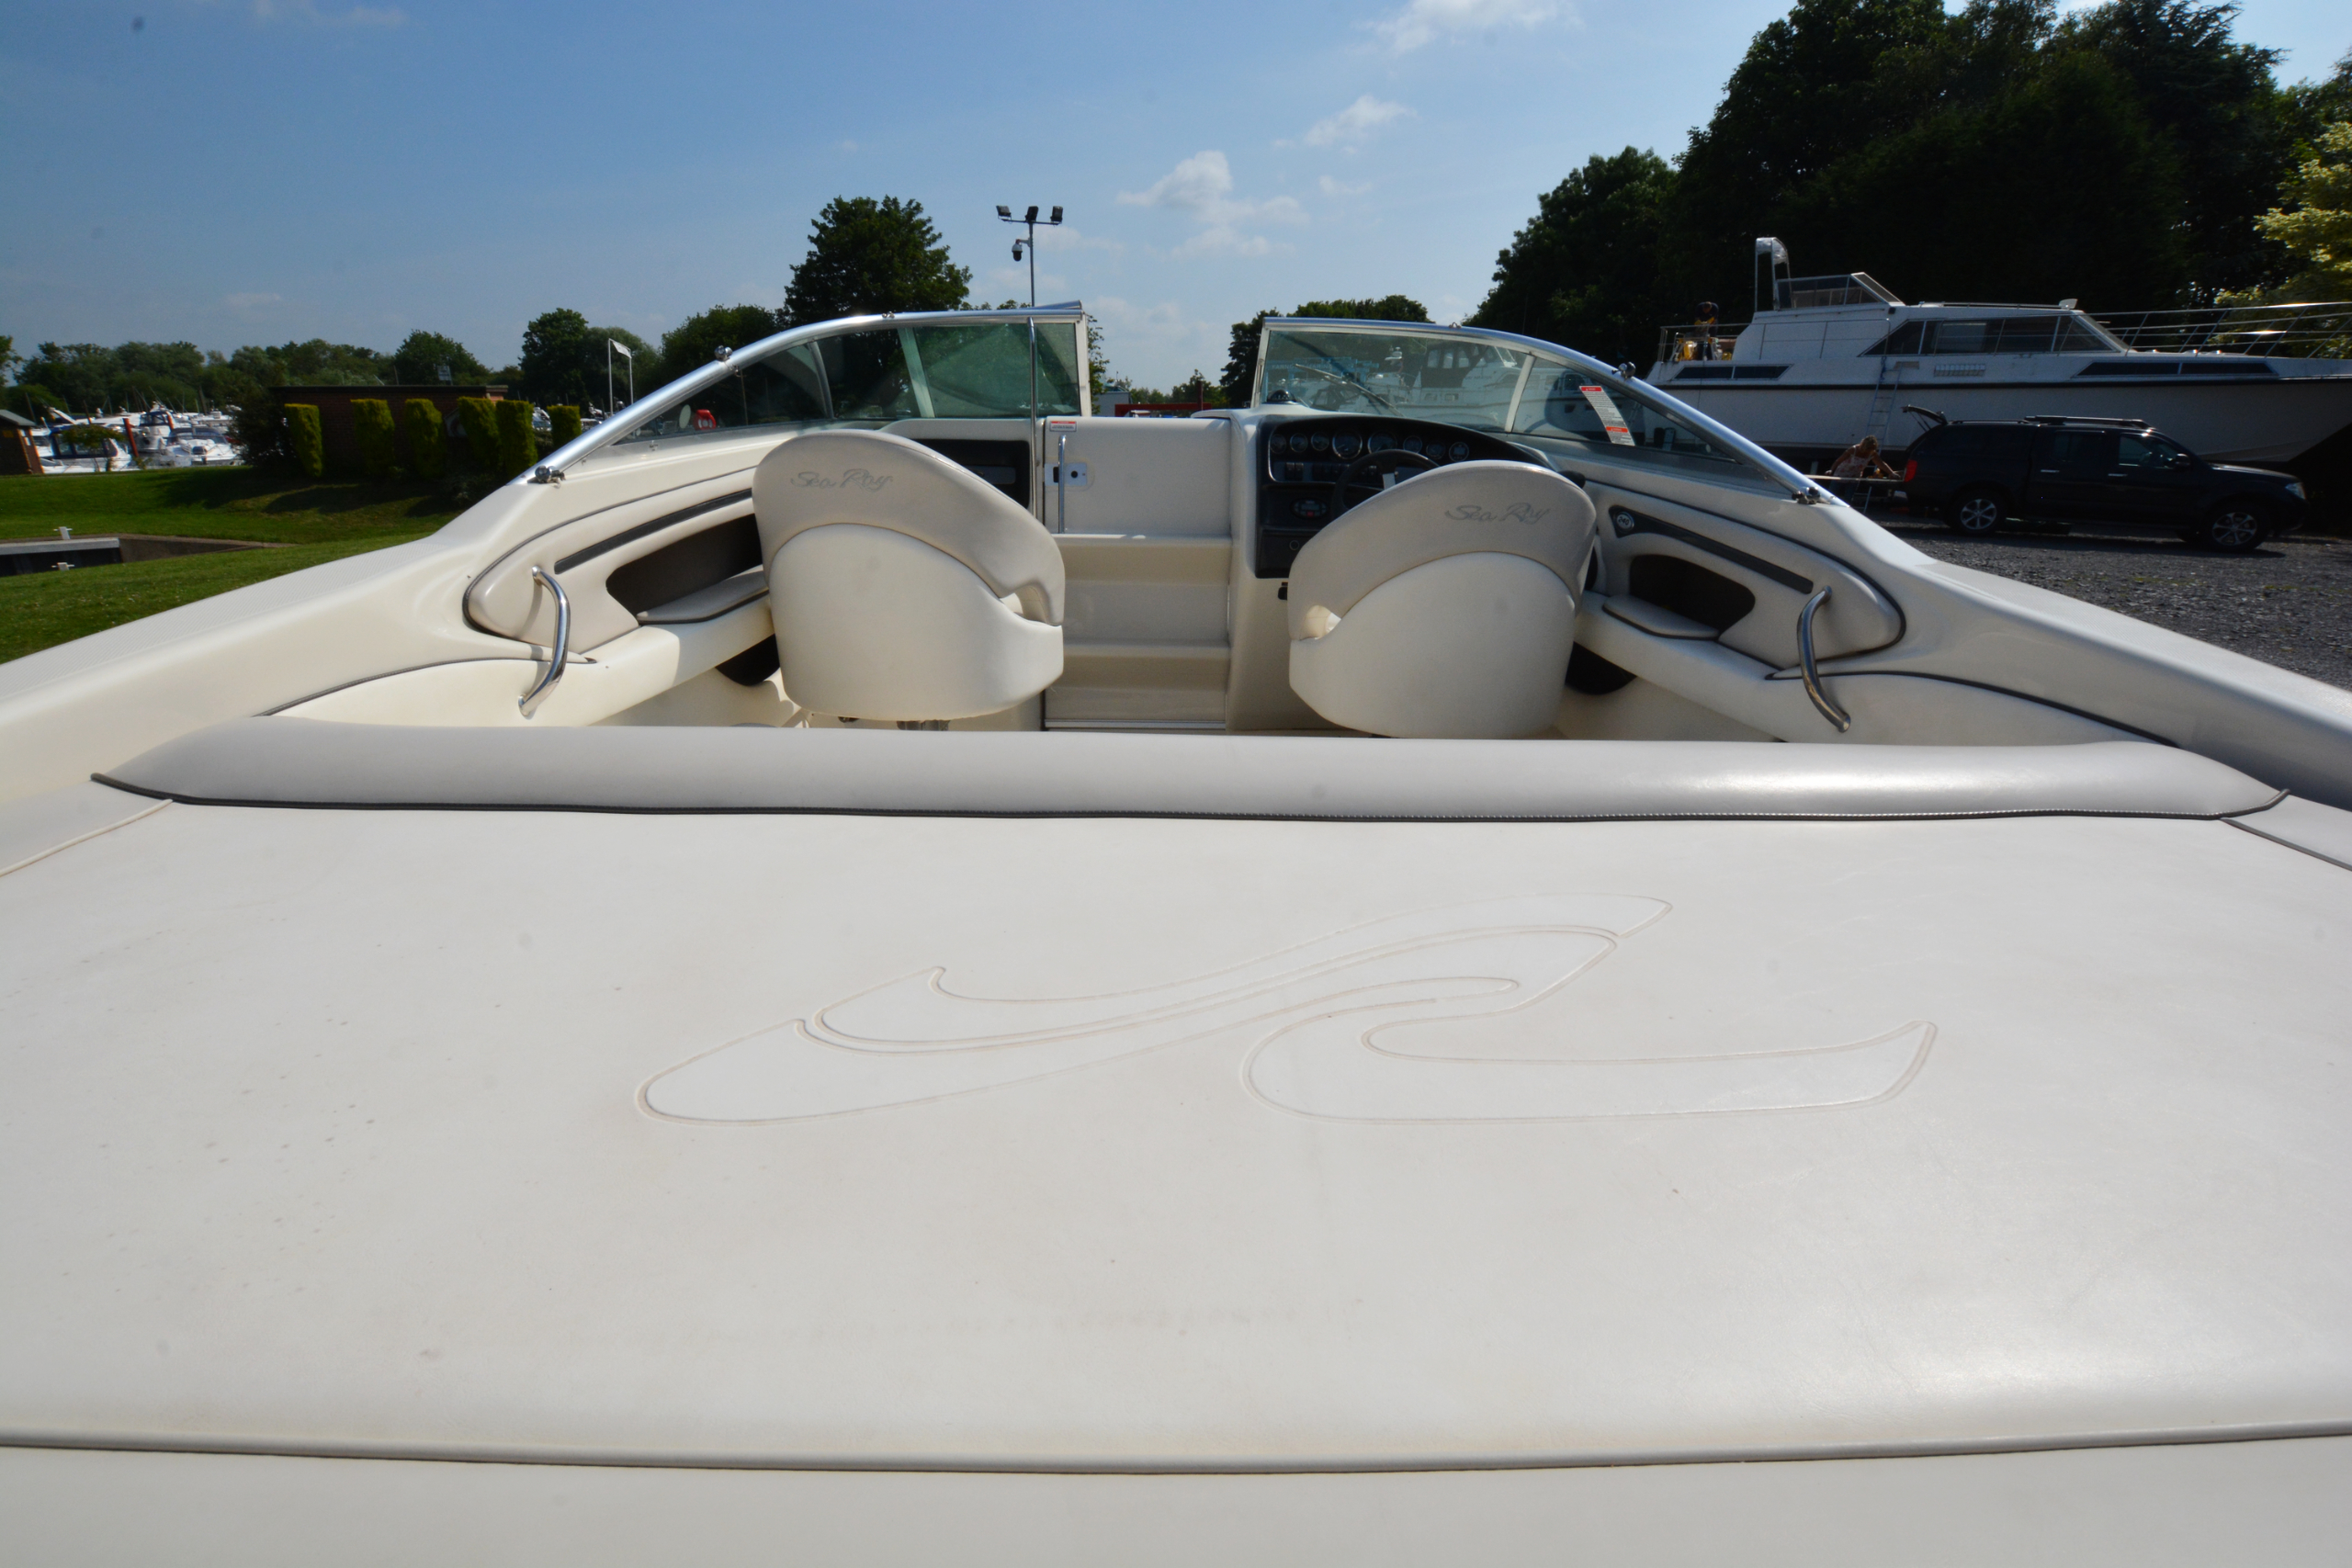 Sea Ray 240 Weekender For Sale £22,500